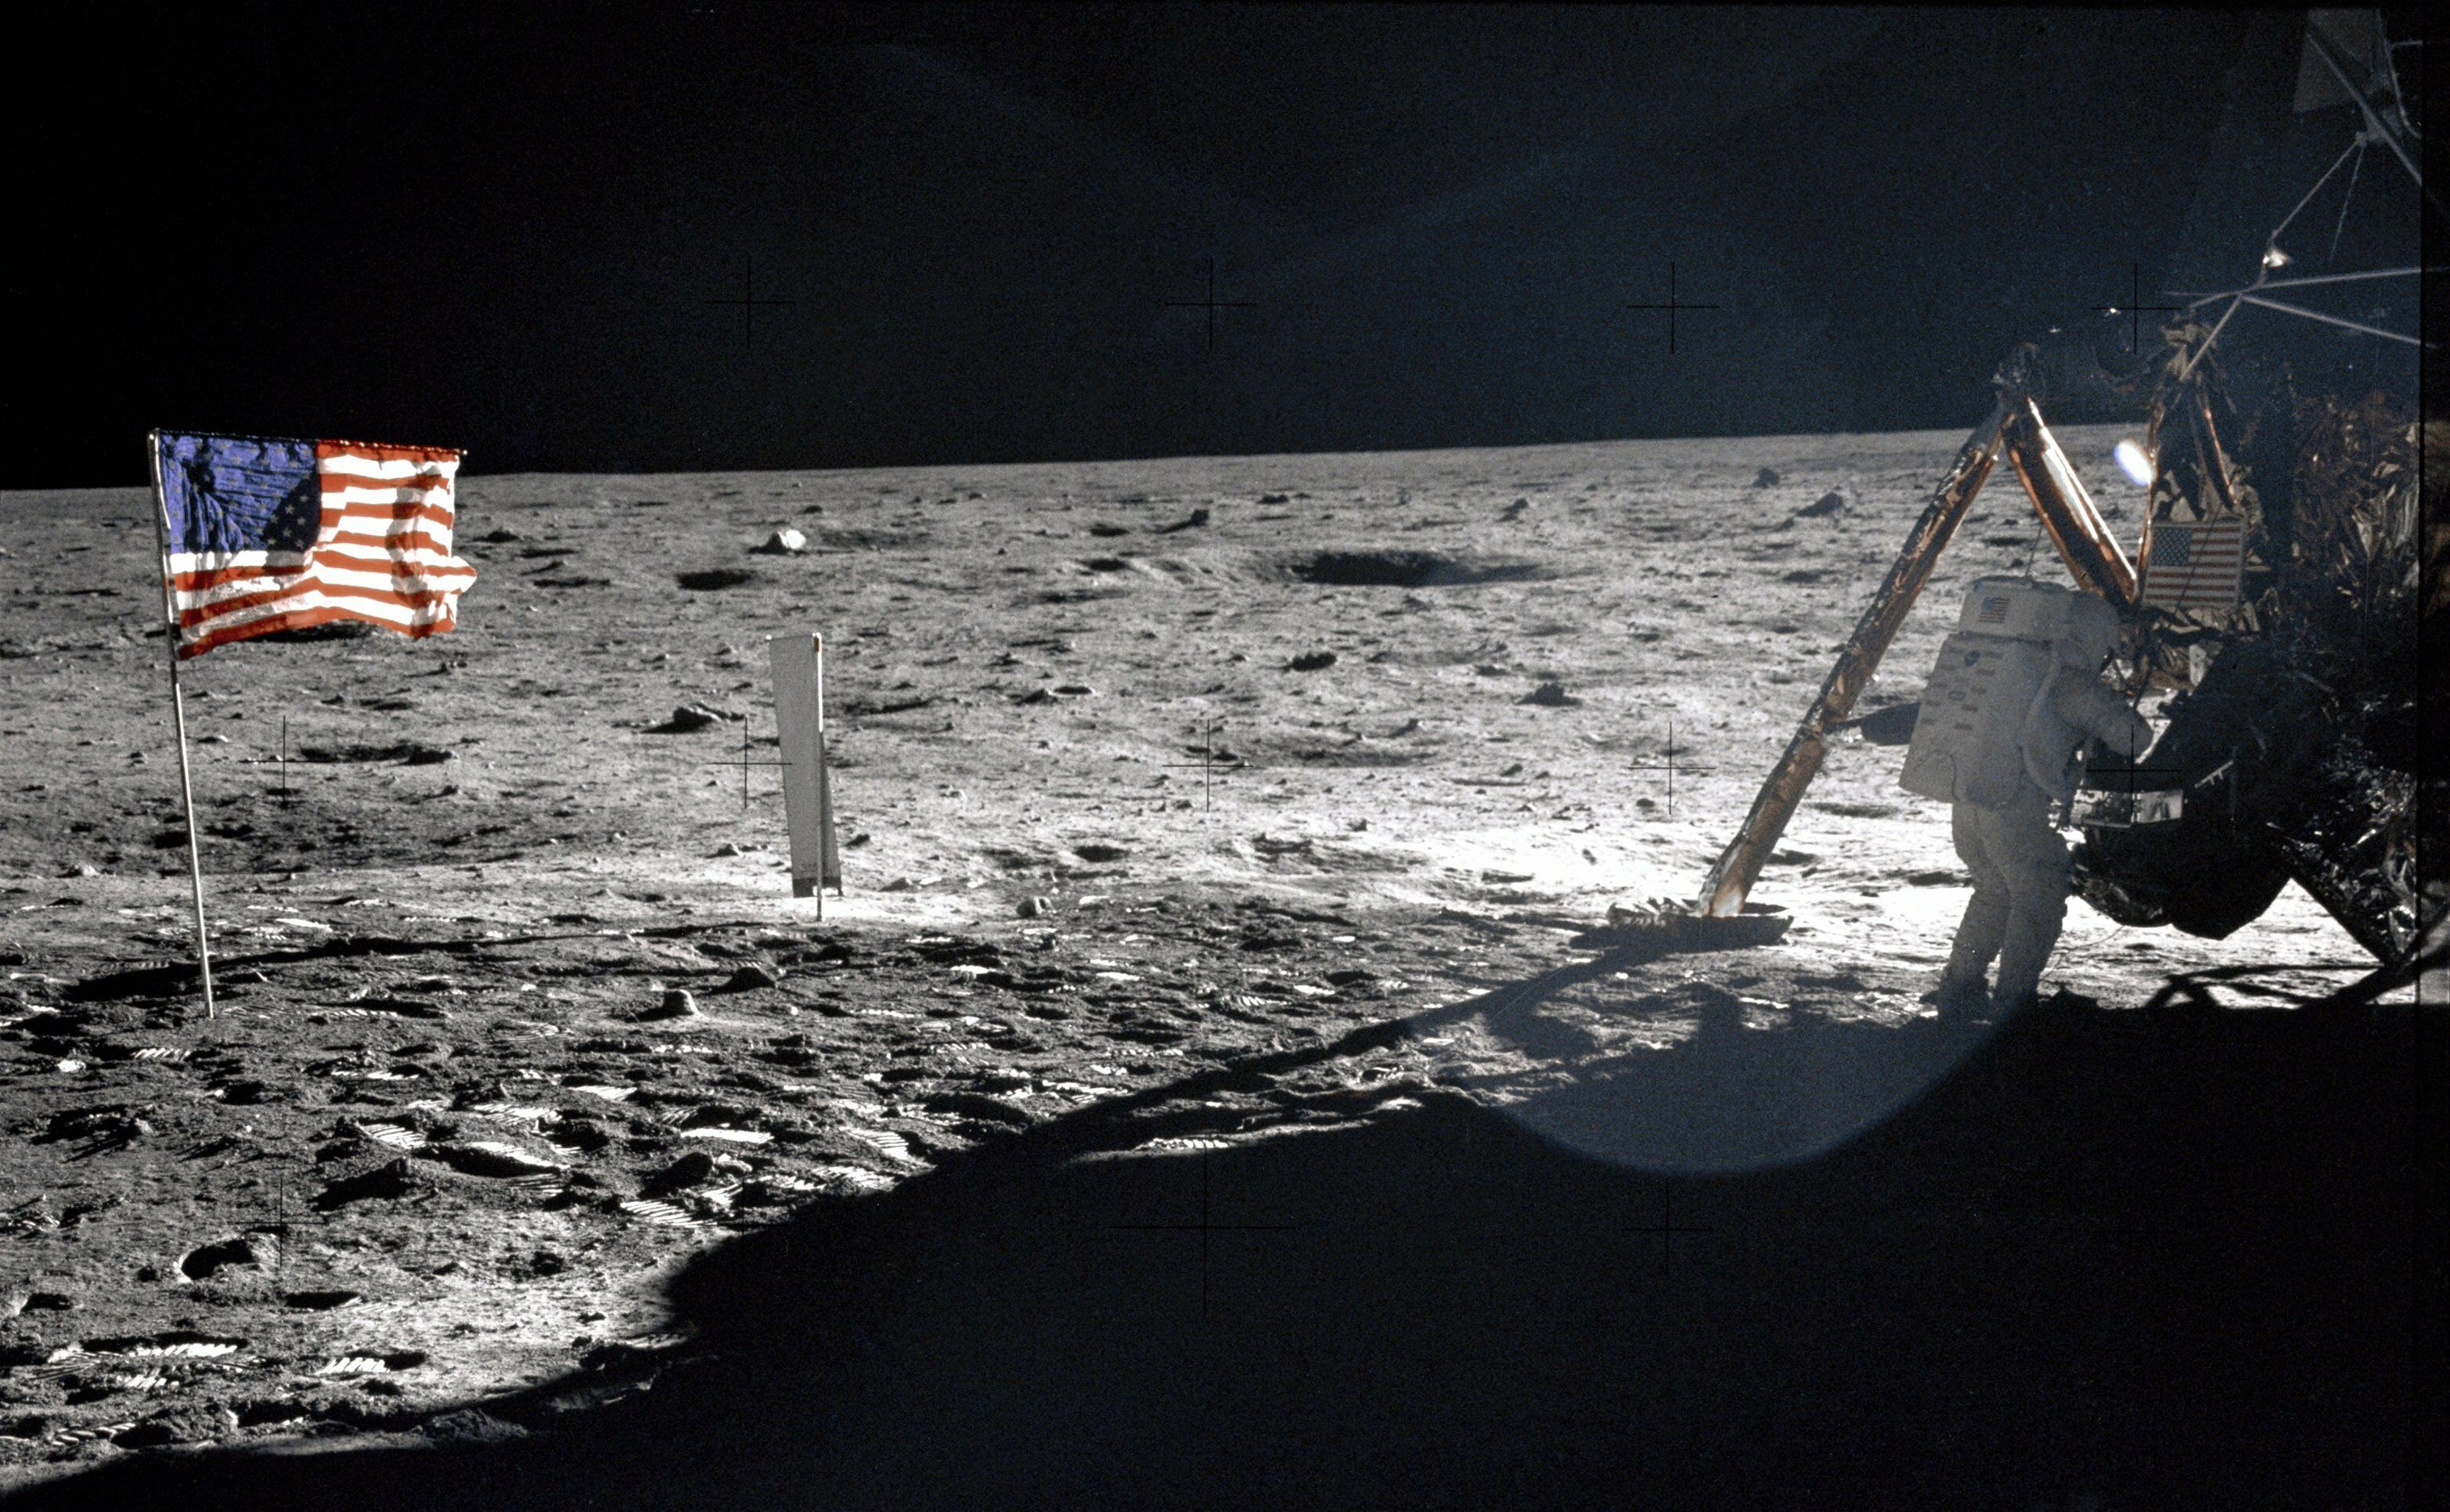 how did the apollo mission change